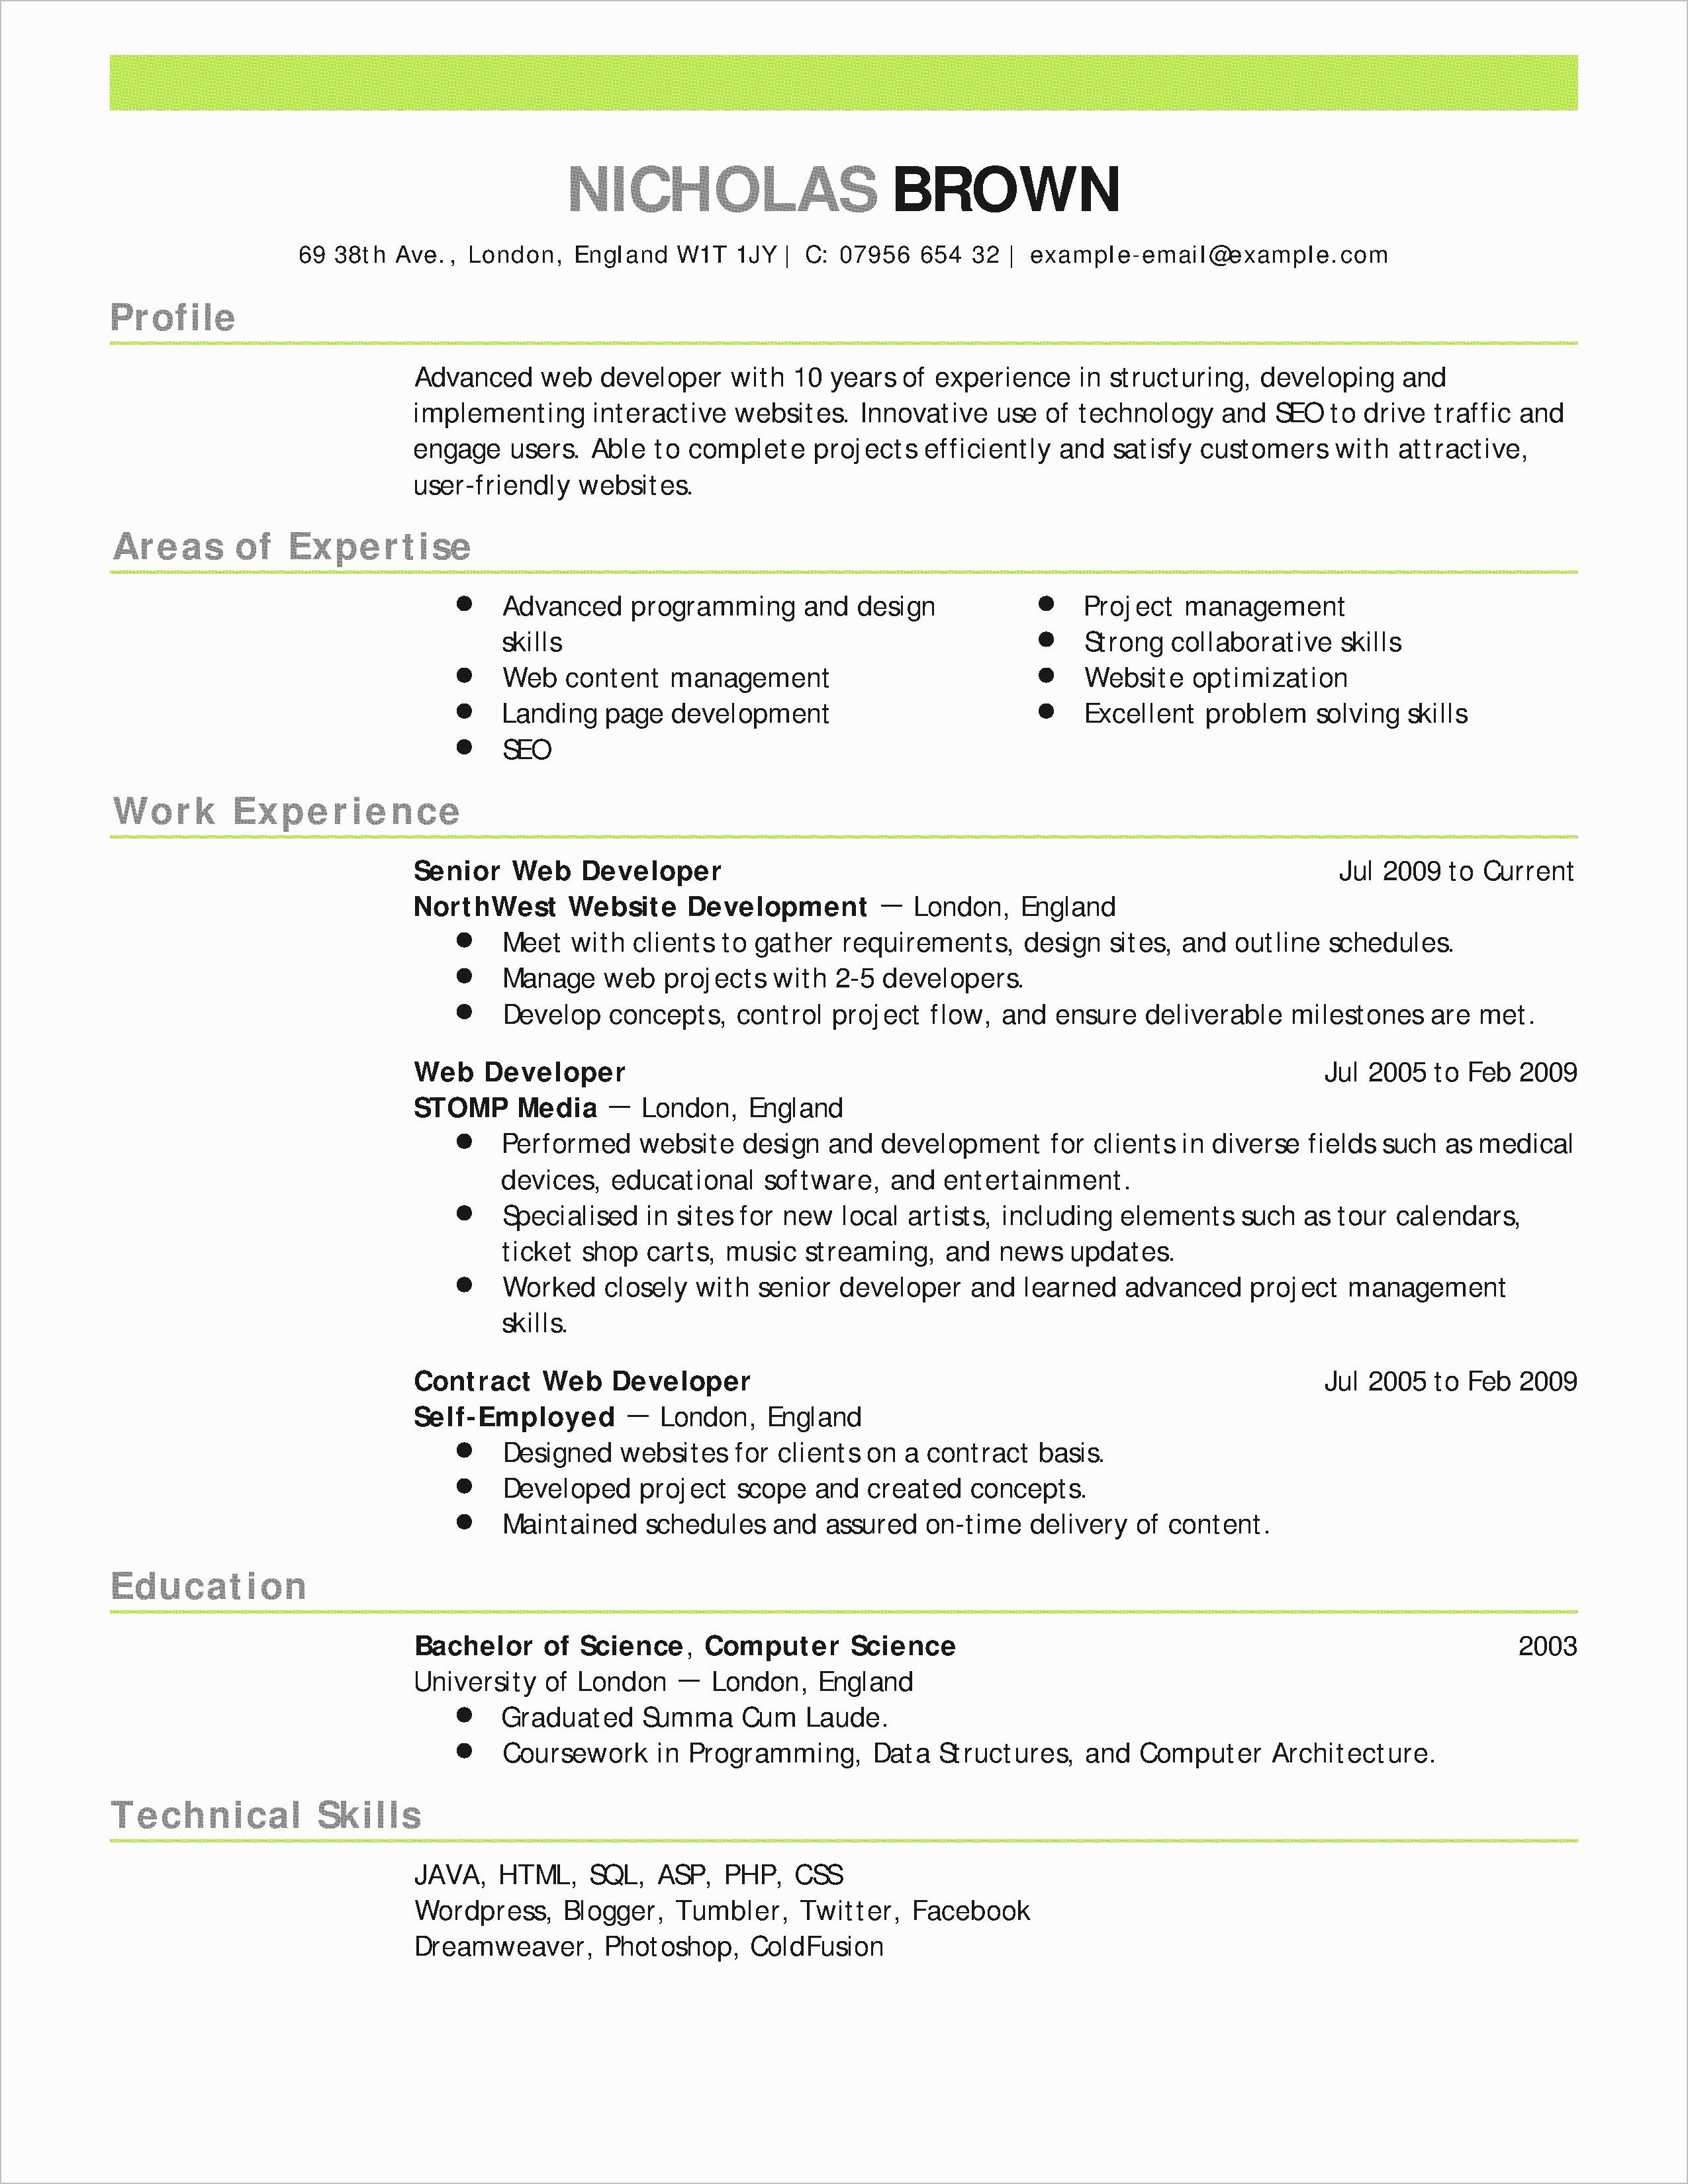 Sample Special Education Teacher Resume - Special Education Cover Letter Beautiful Example A Cover Letter for